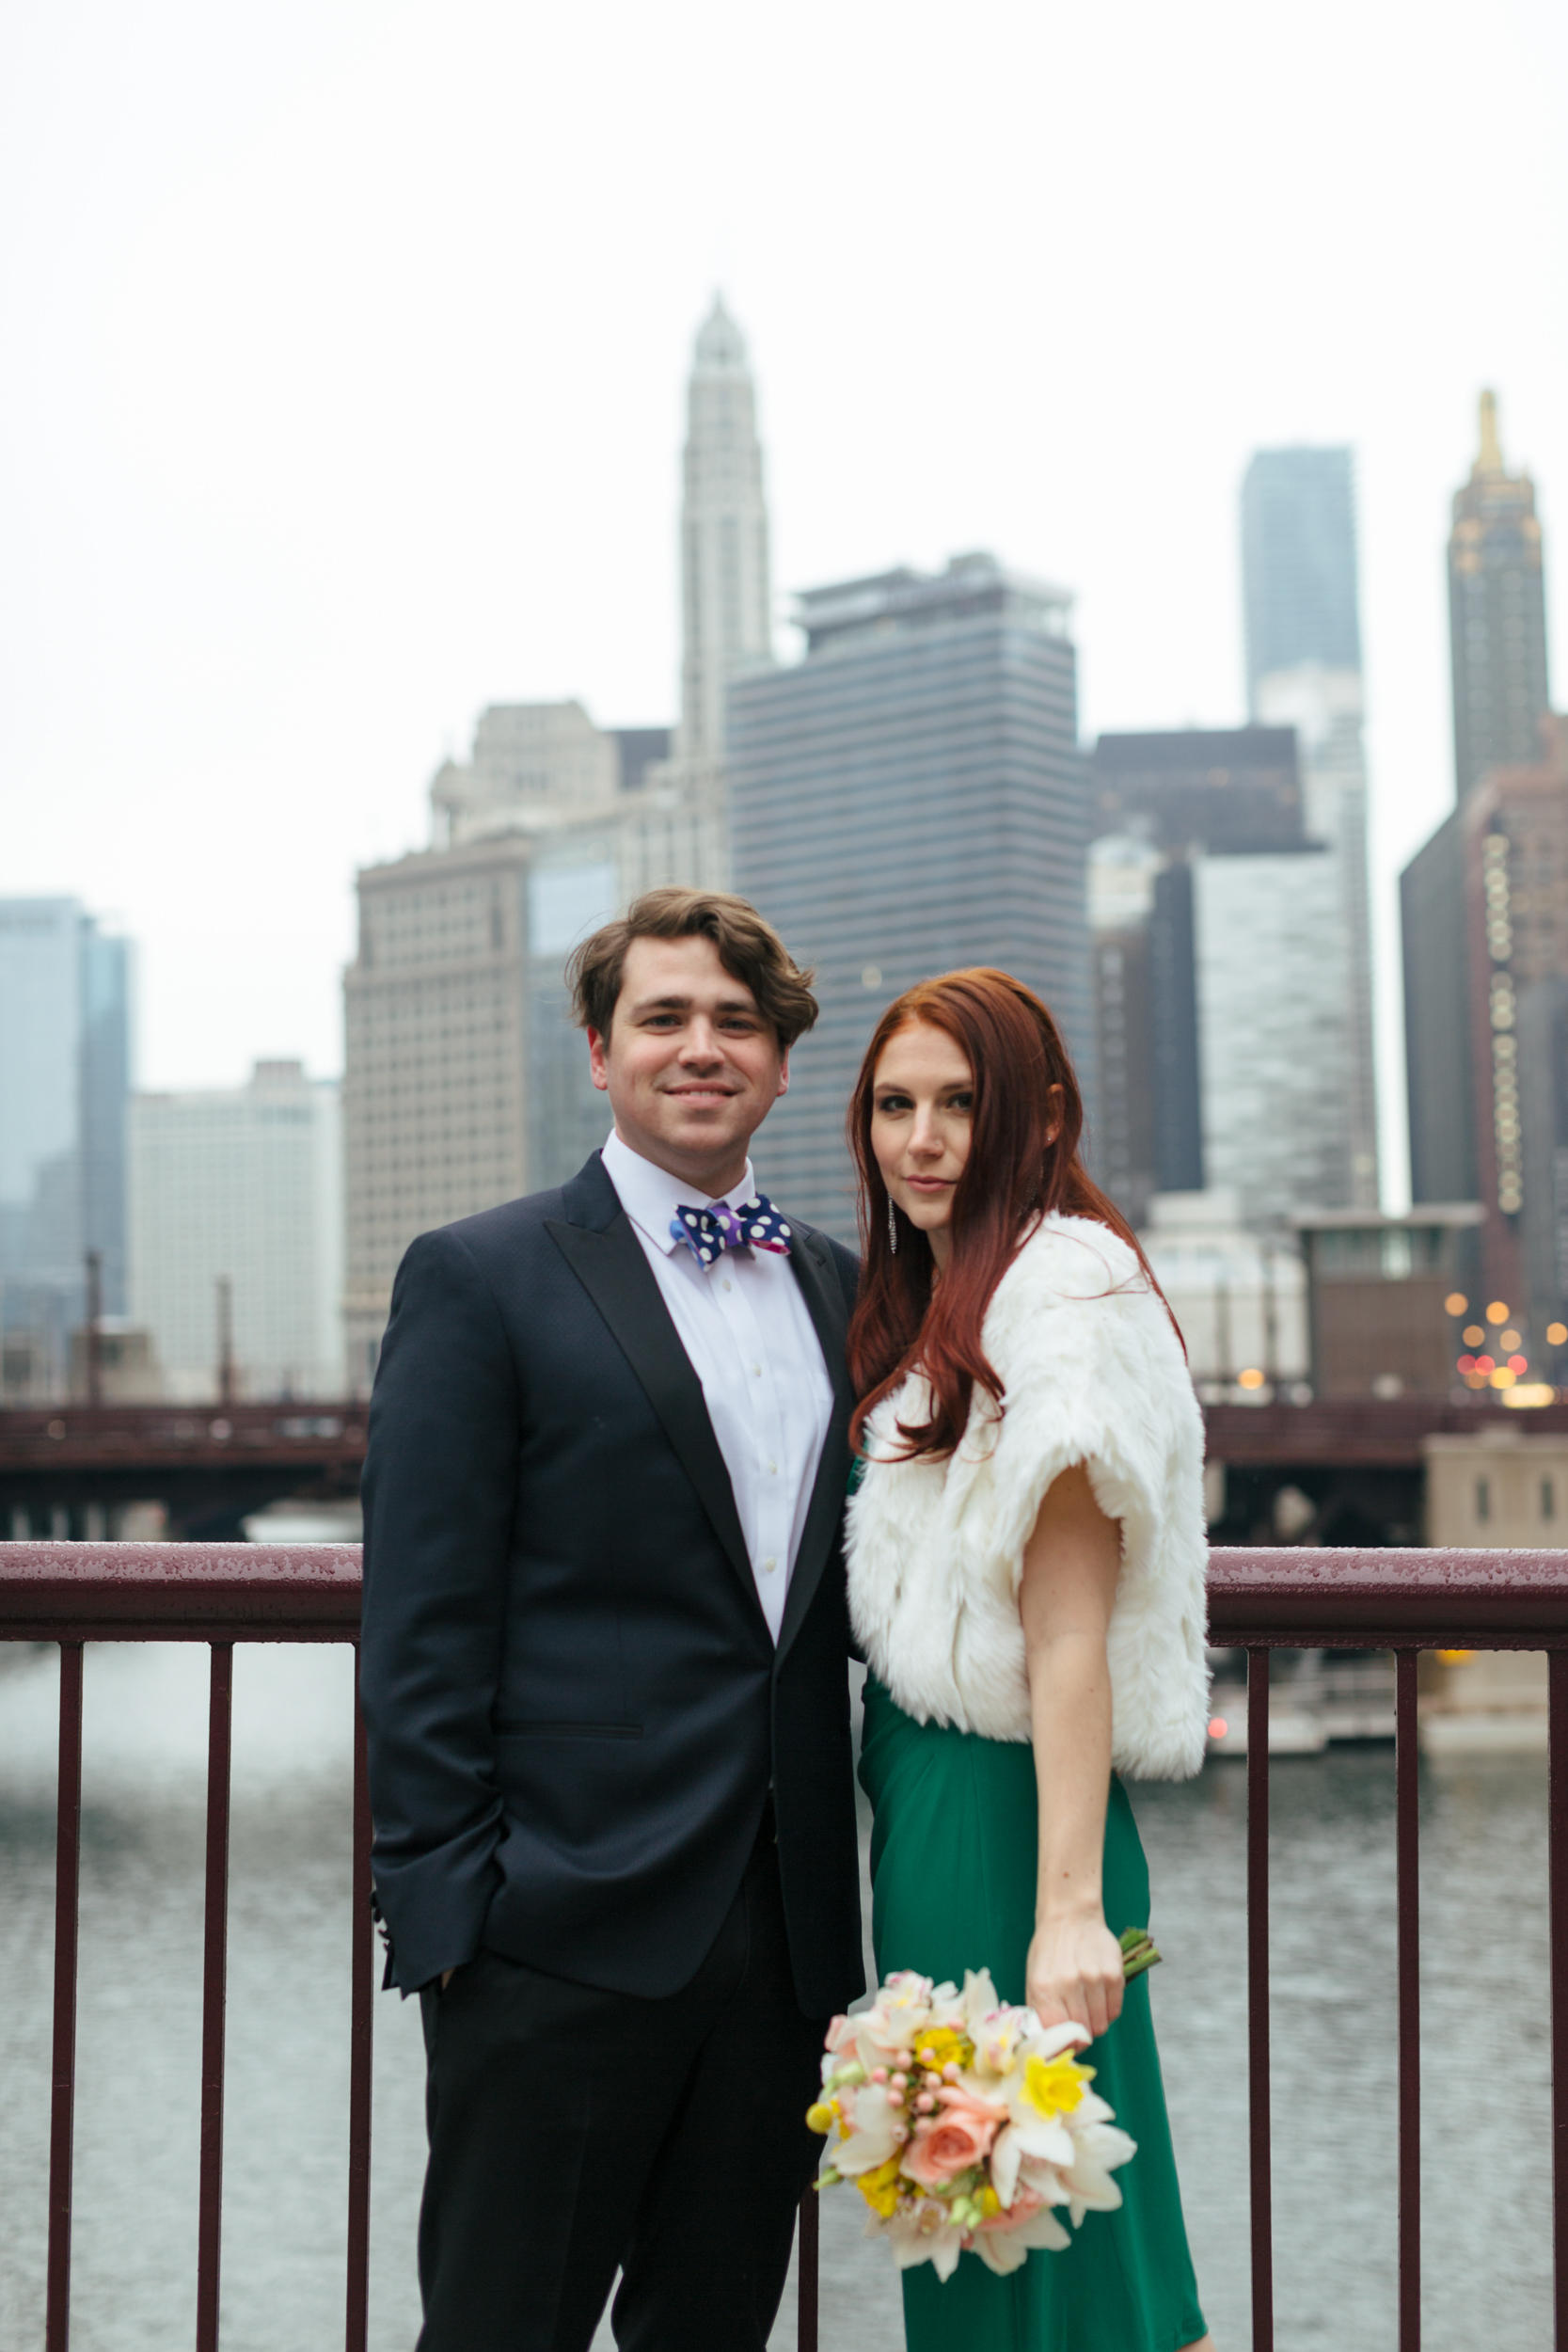 Chicago_elopement_wedding_3